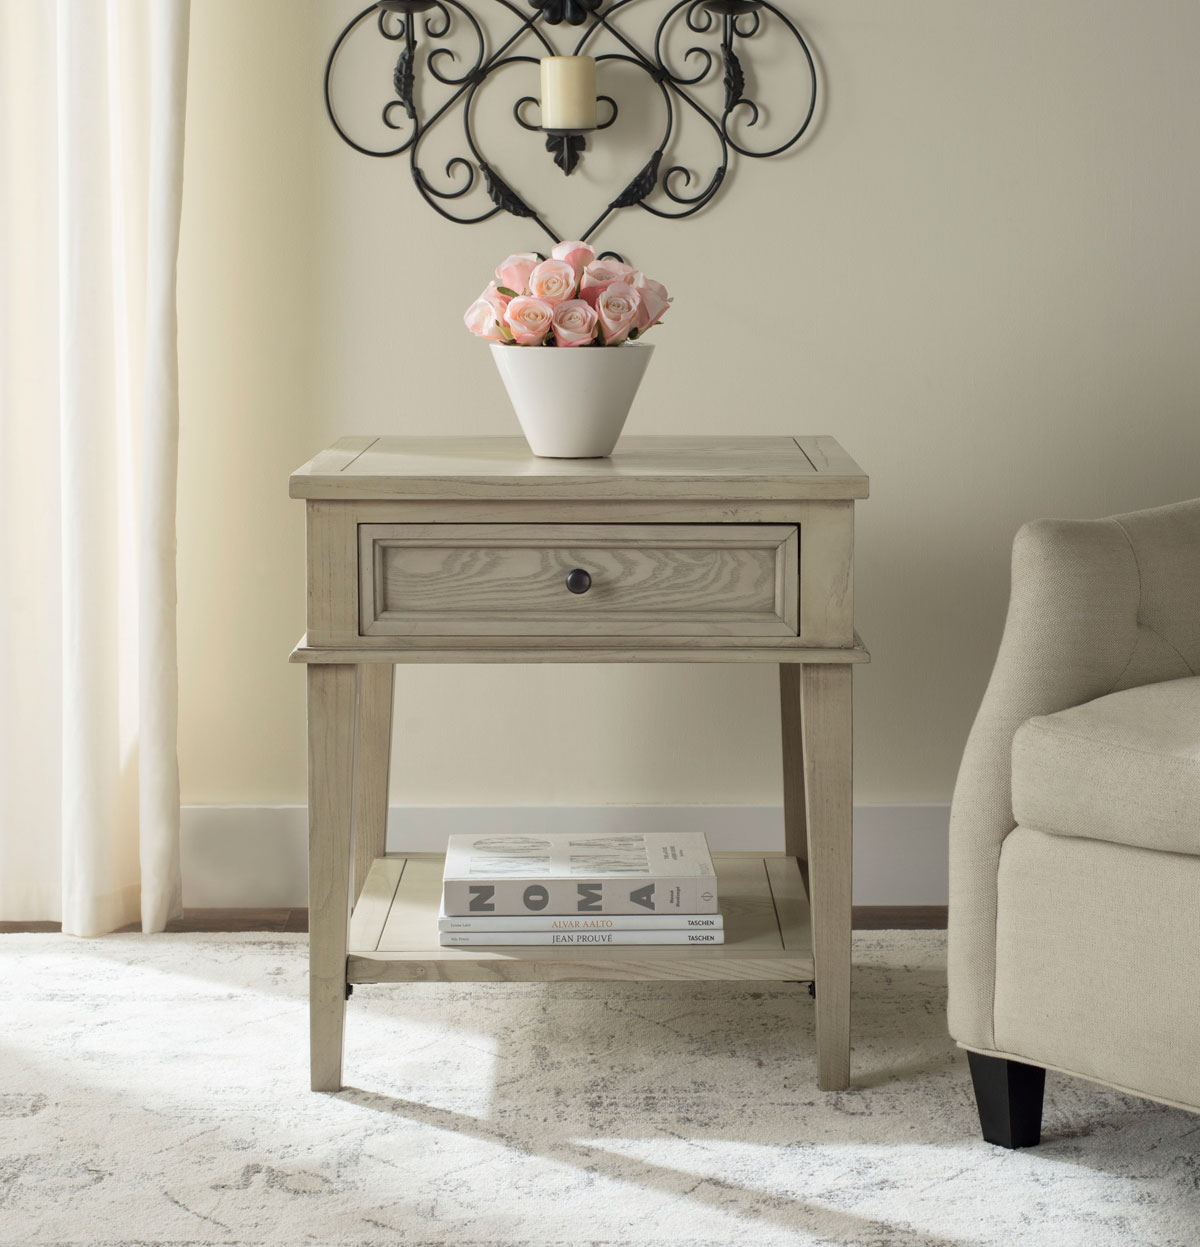 accent tables furniture safavieh room whitewash table share this product oriental lamps west elm dining chairs space saver chinese style lamp shades pier one pillows clearance